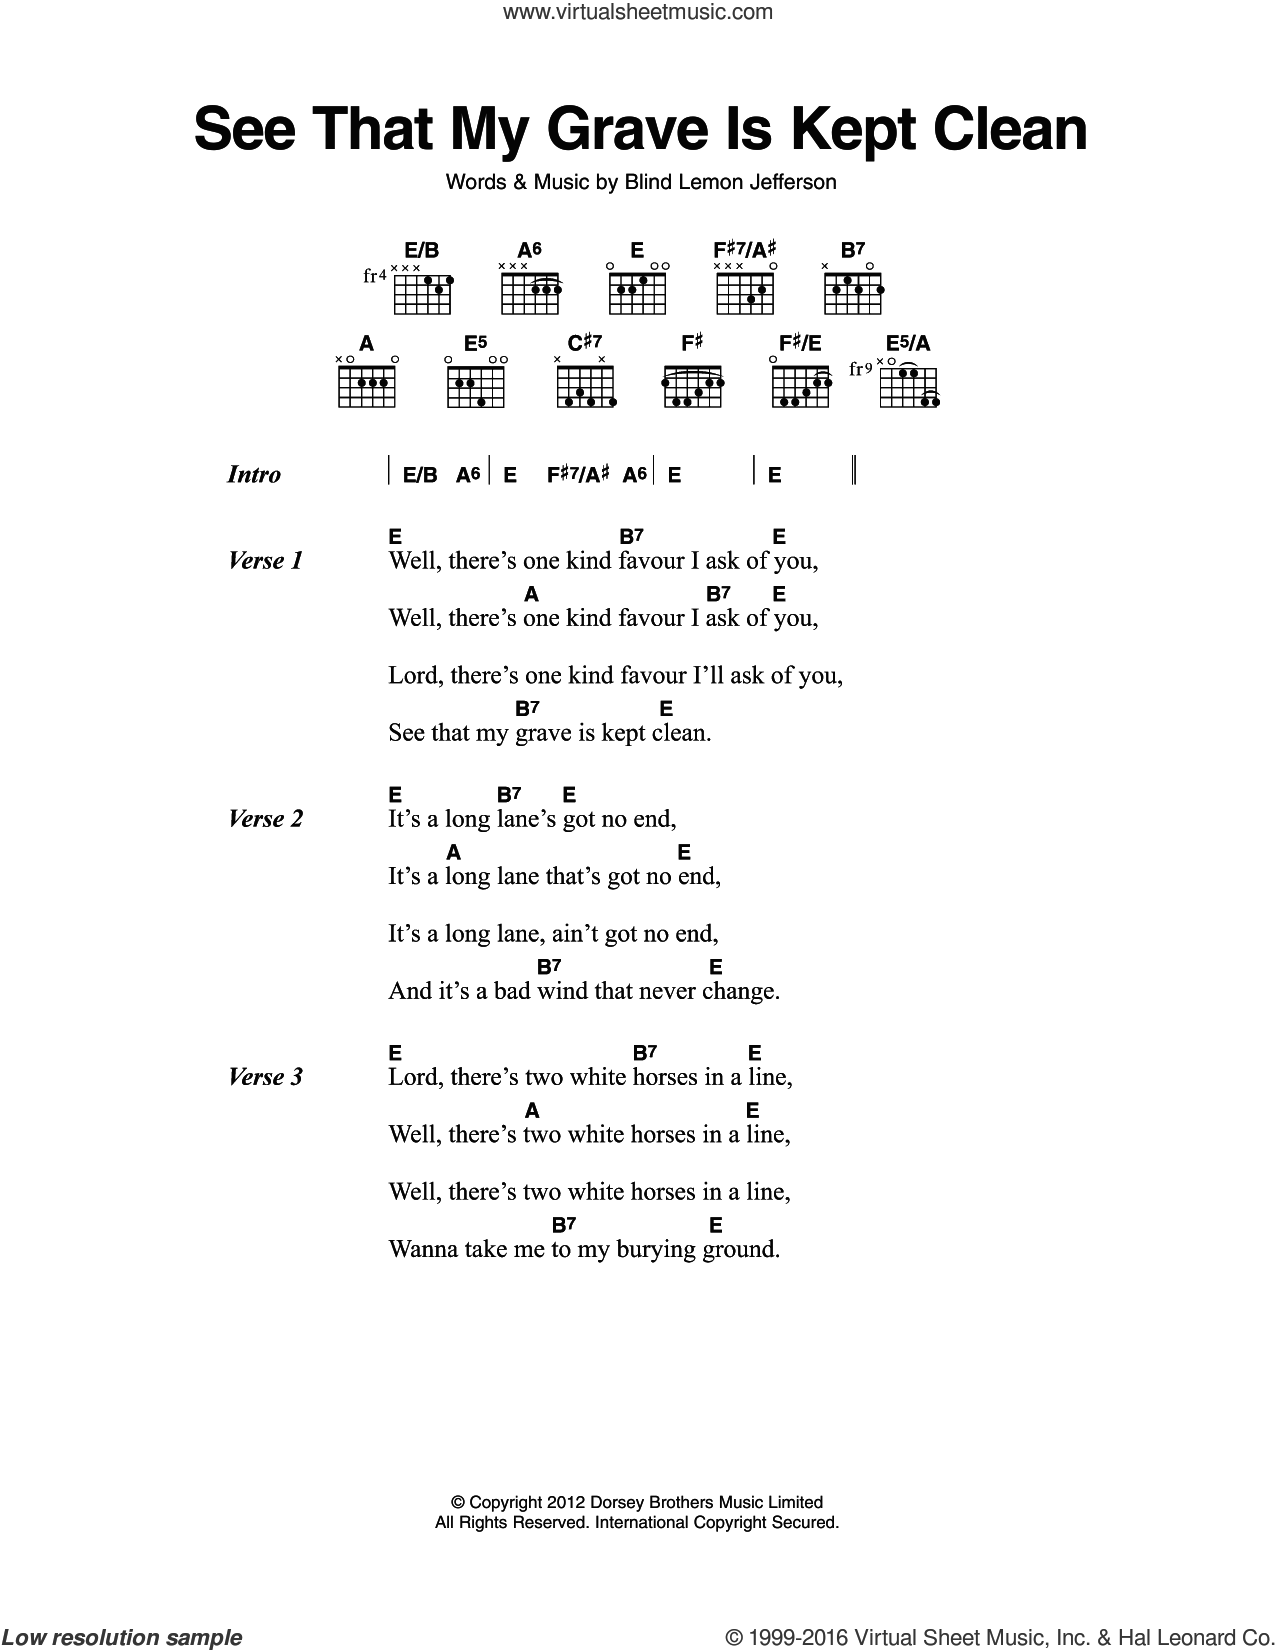 See That My Grave Is Kept Clean sheet music for guitar (chords) by Blind Lemon Jefferson. Score Image Preview.